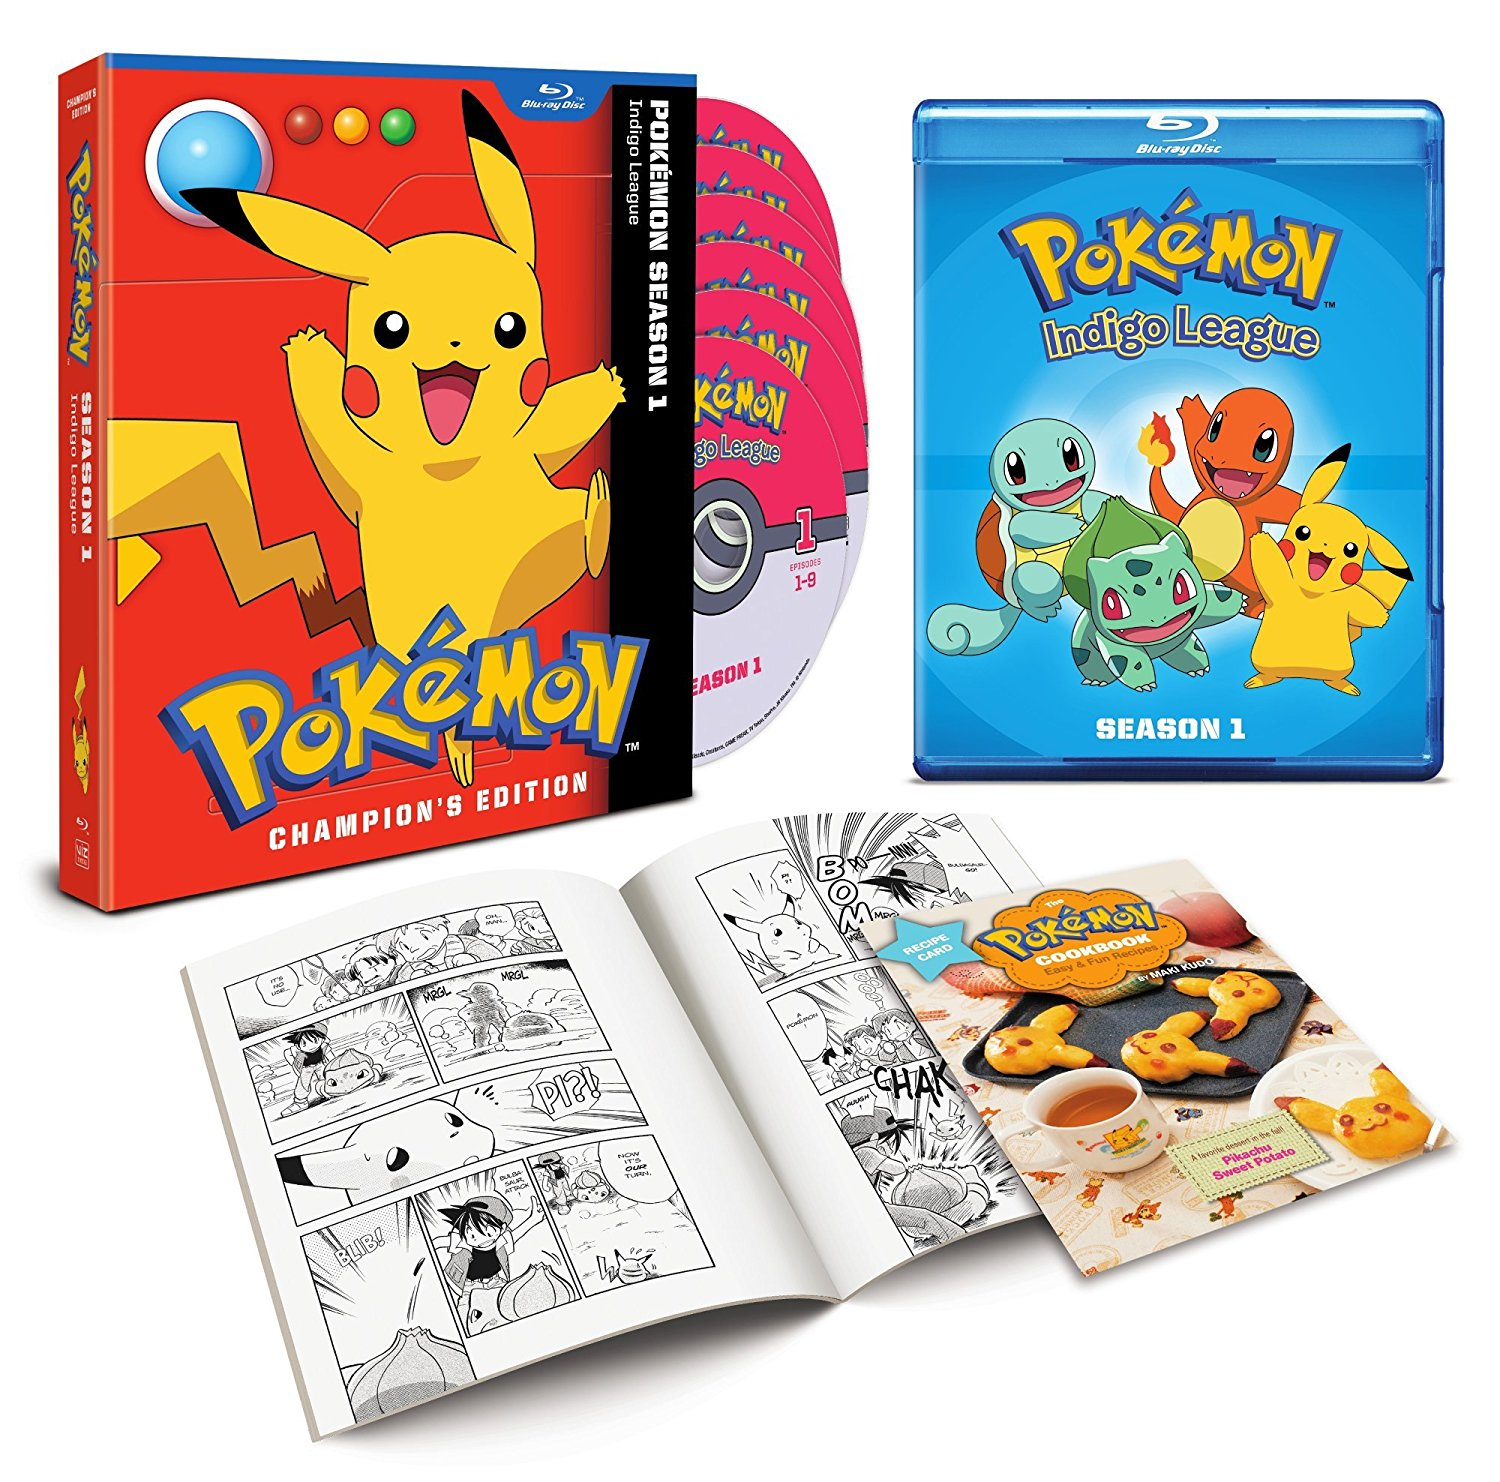 Pokemon DVD set interior